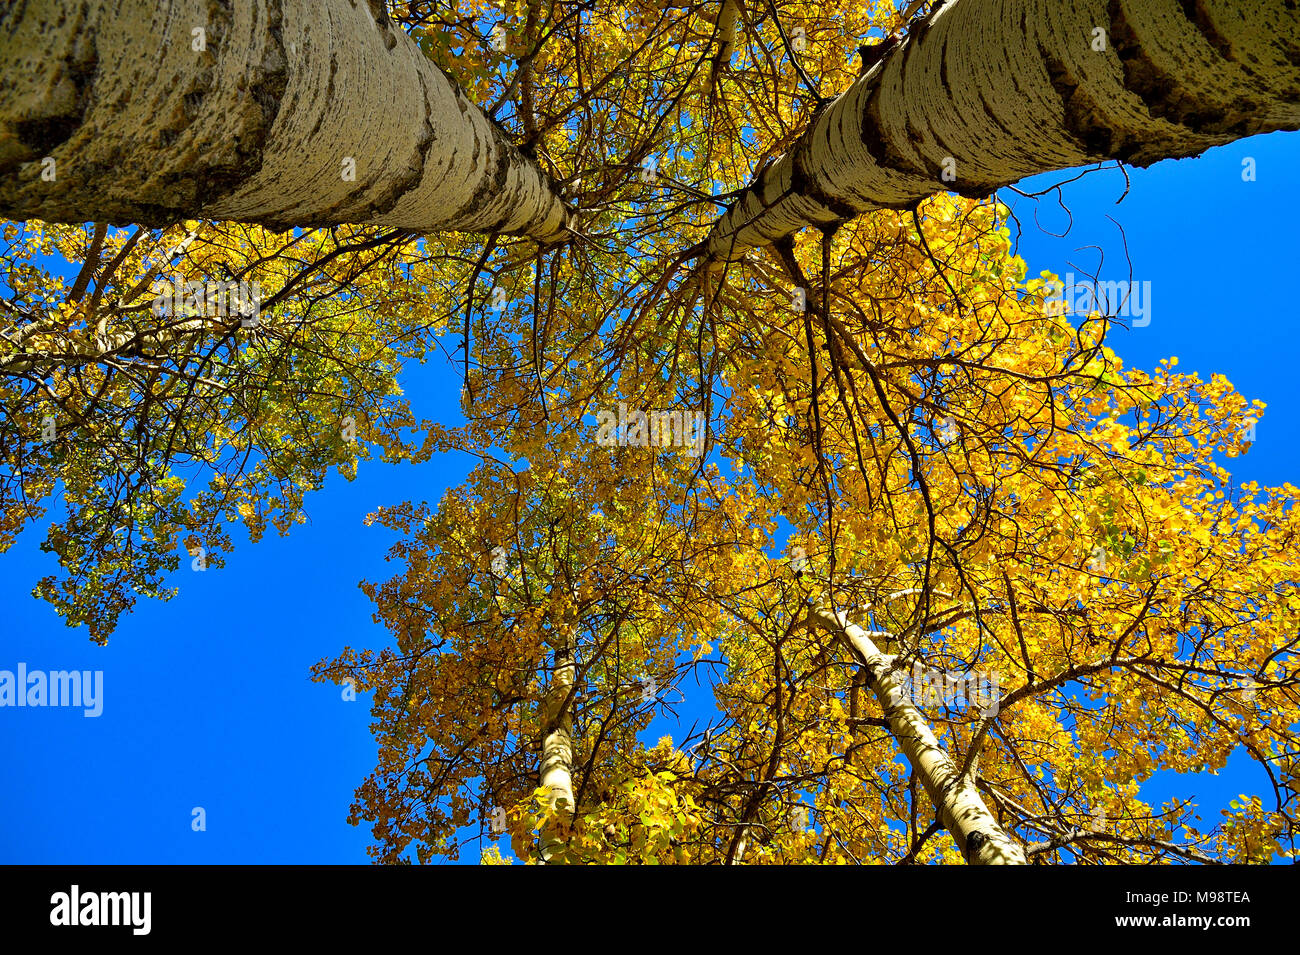 Looking up to the tops of tall aspen trees with bright yellow leaves against a clear blue sky in rural Alberta Canada. - Stock Image